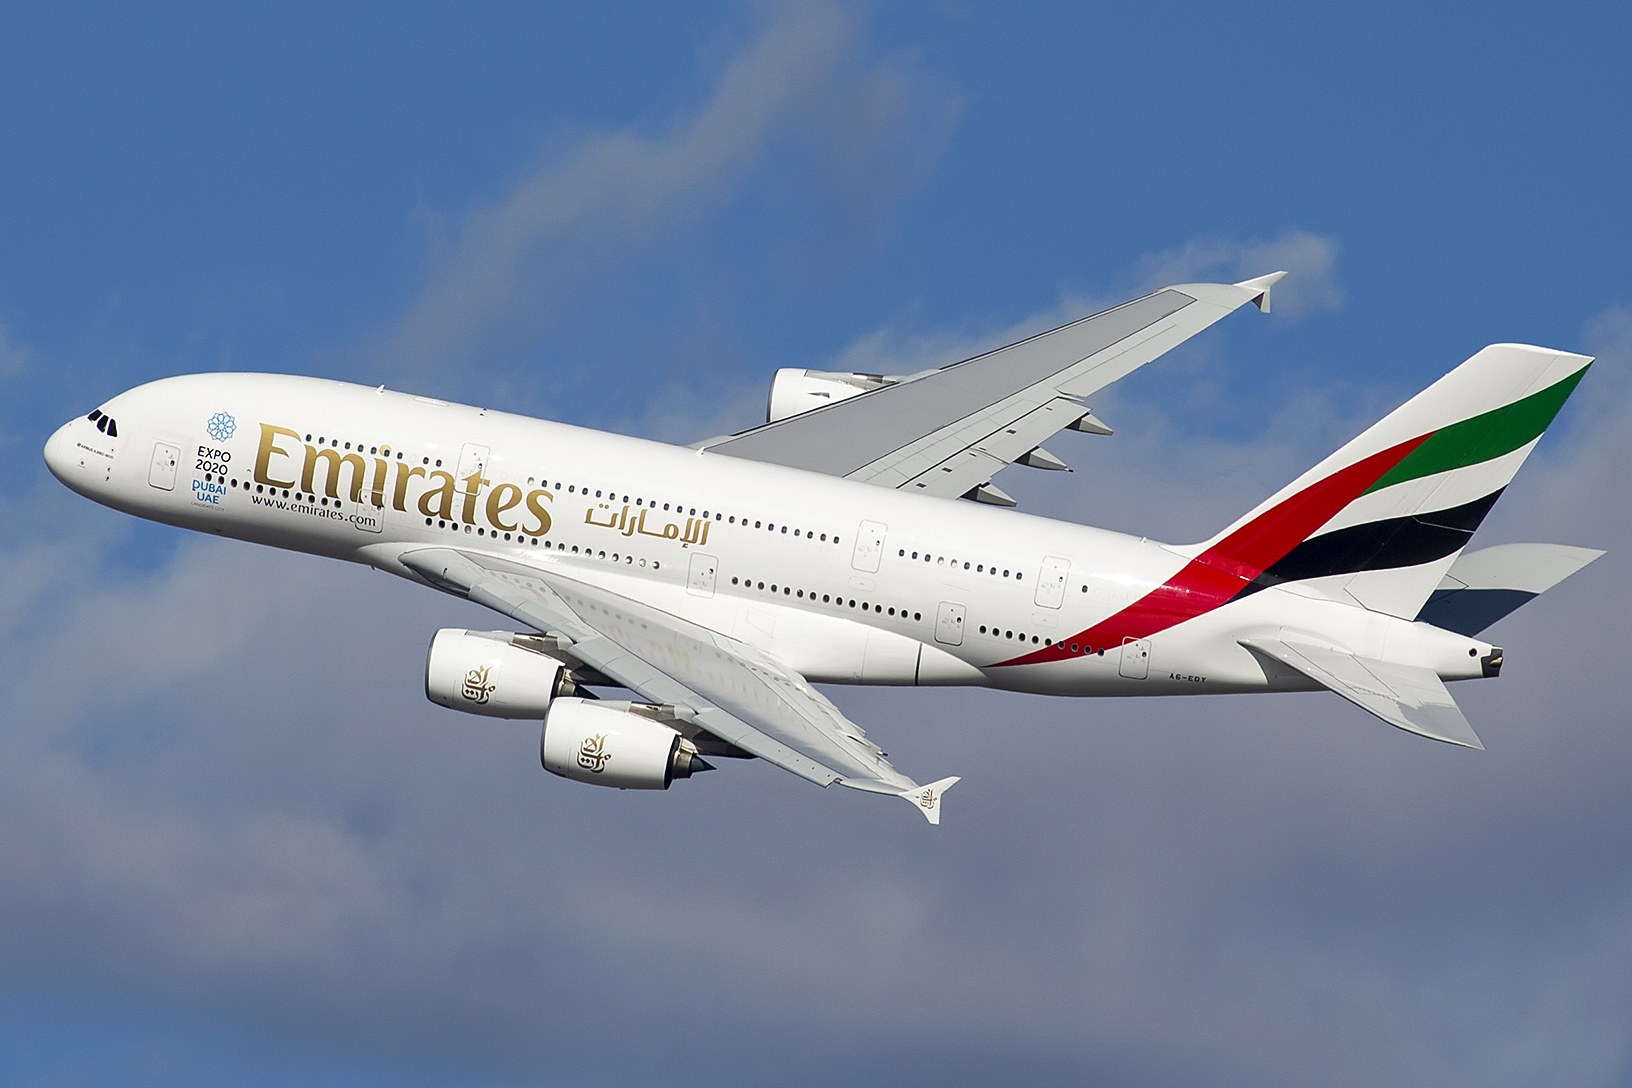 A6-EDY_A380_Emirates_31_jan_2013_jfk_(8442269364)_(cropped).jpg